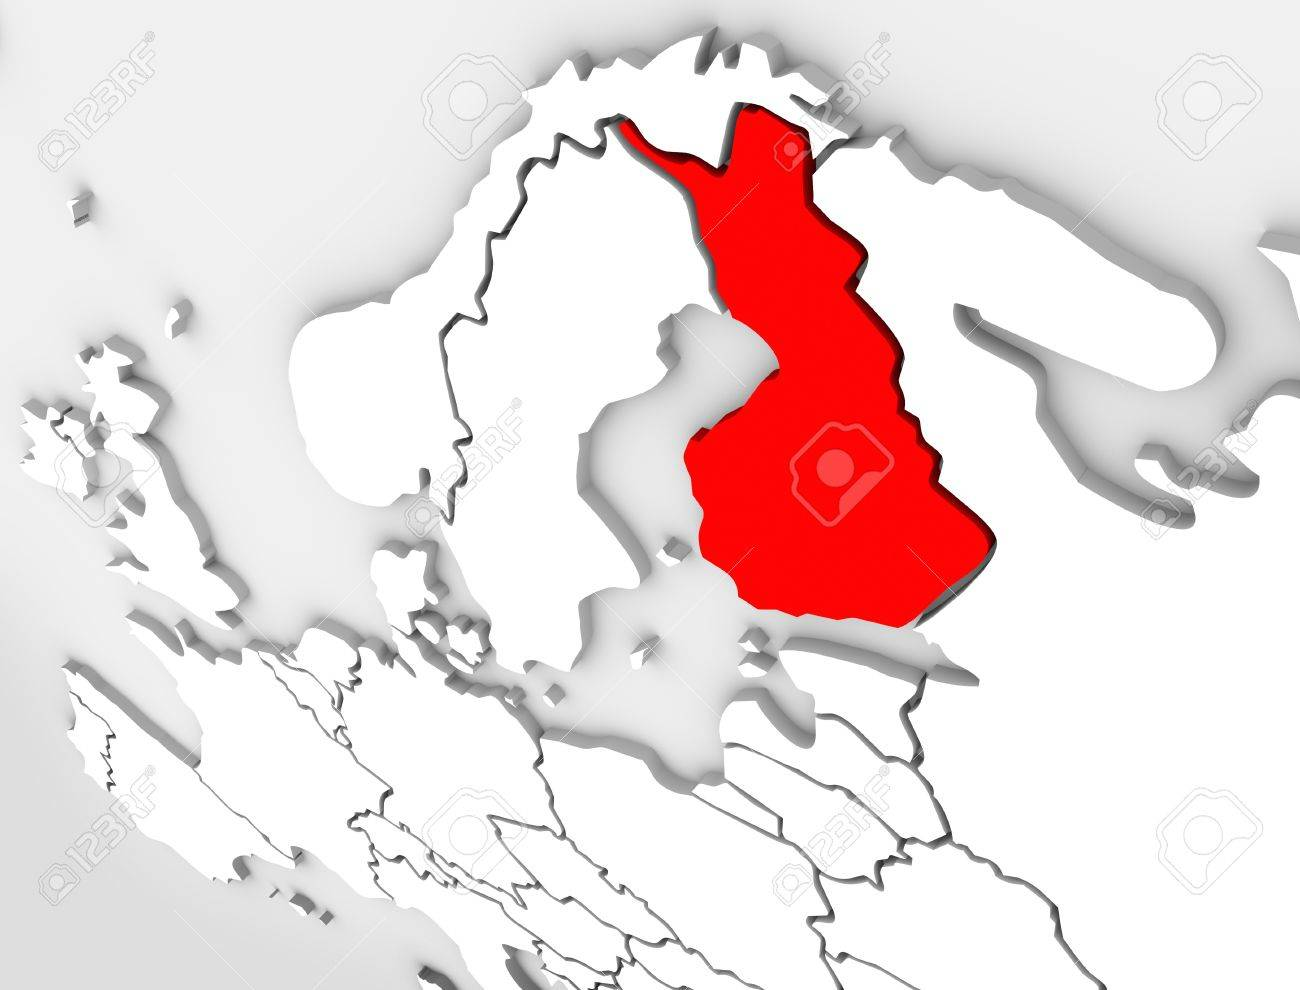 finland country on an abstract illustrated 3d map of northern europe continent and scandinavia region stock